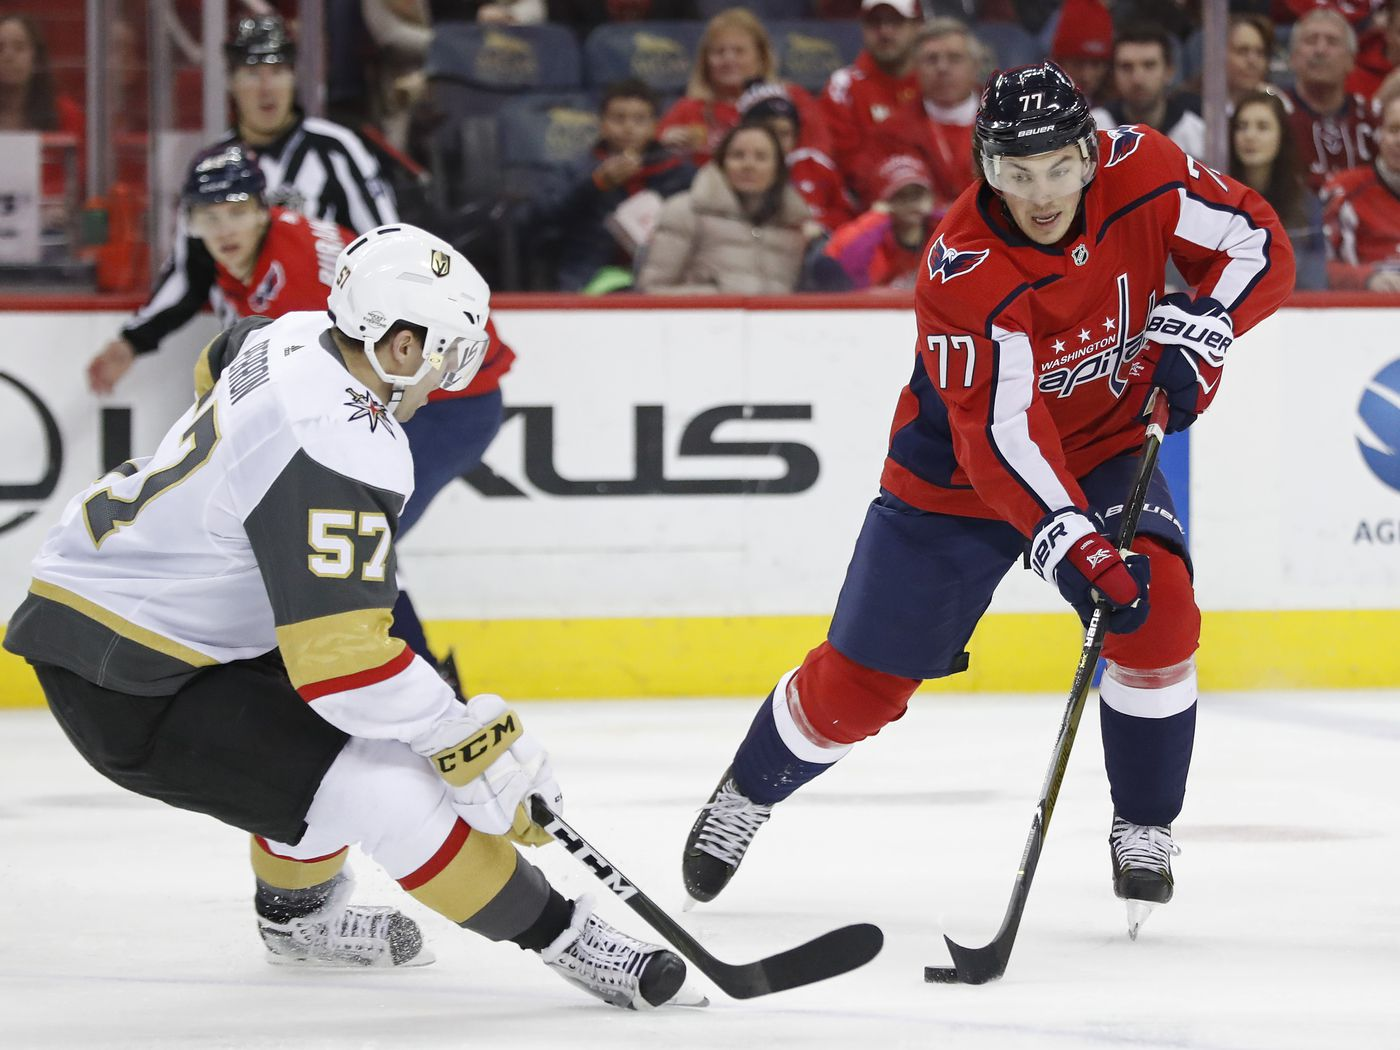 05175a8d0 GAMEDAY THREAD — Stanley Cup Final Game 3  Vegas Golden Knights at  Washington Capitals - Knights On Ice